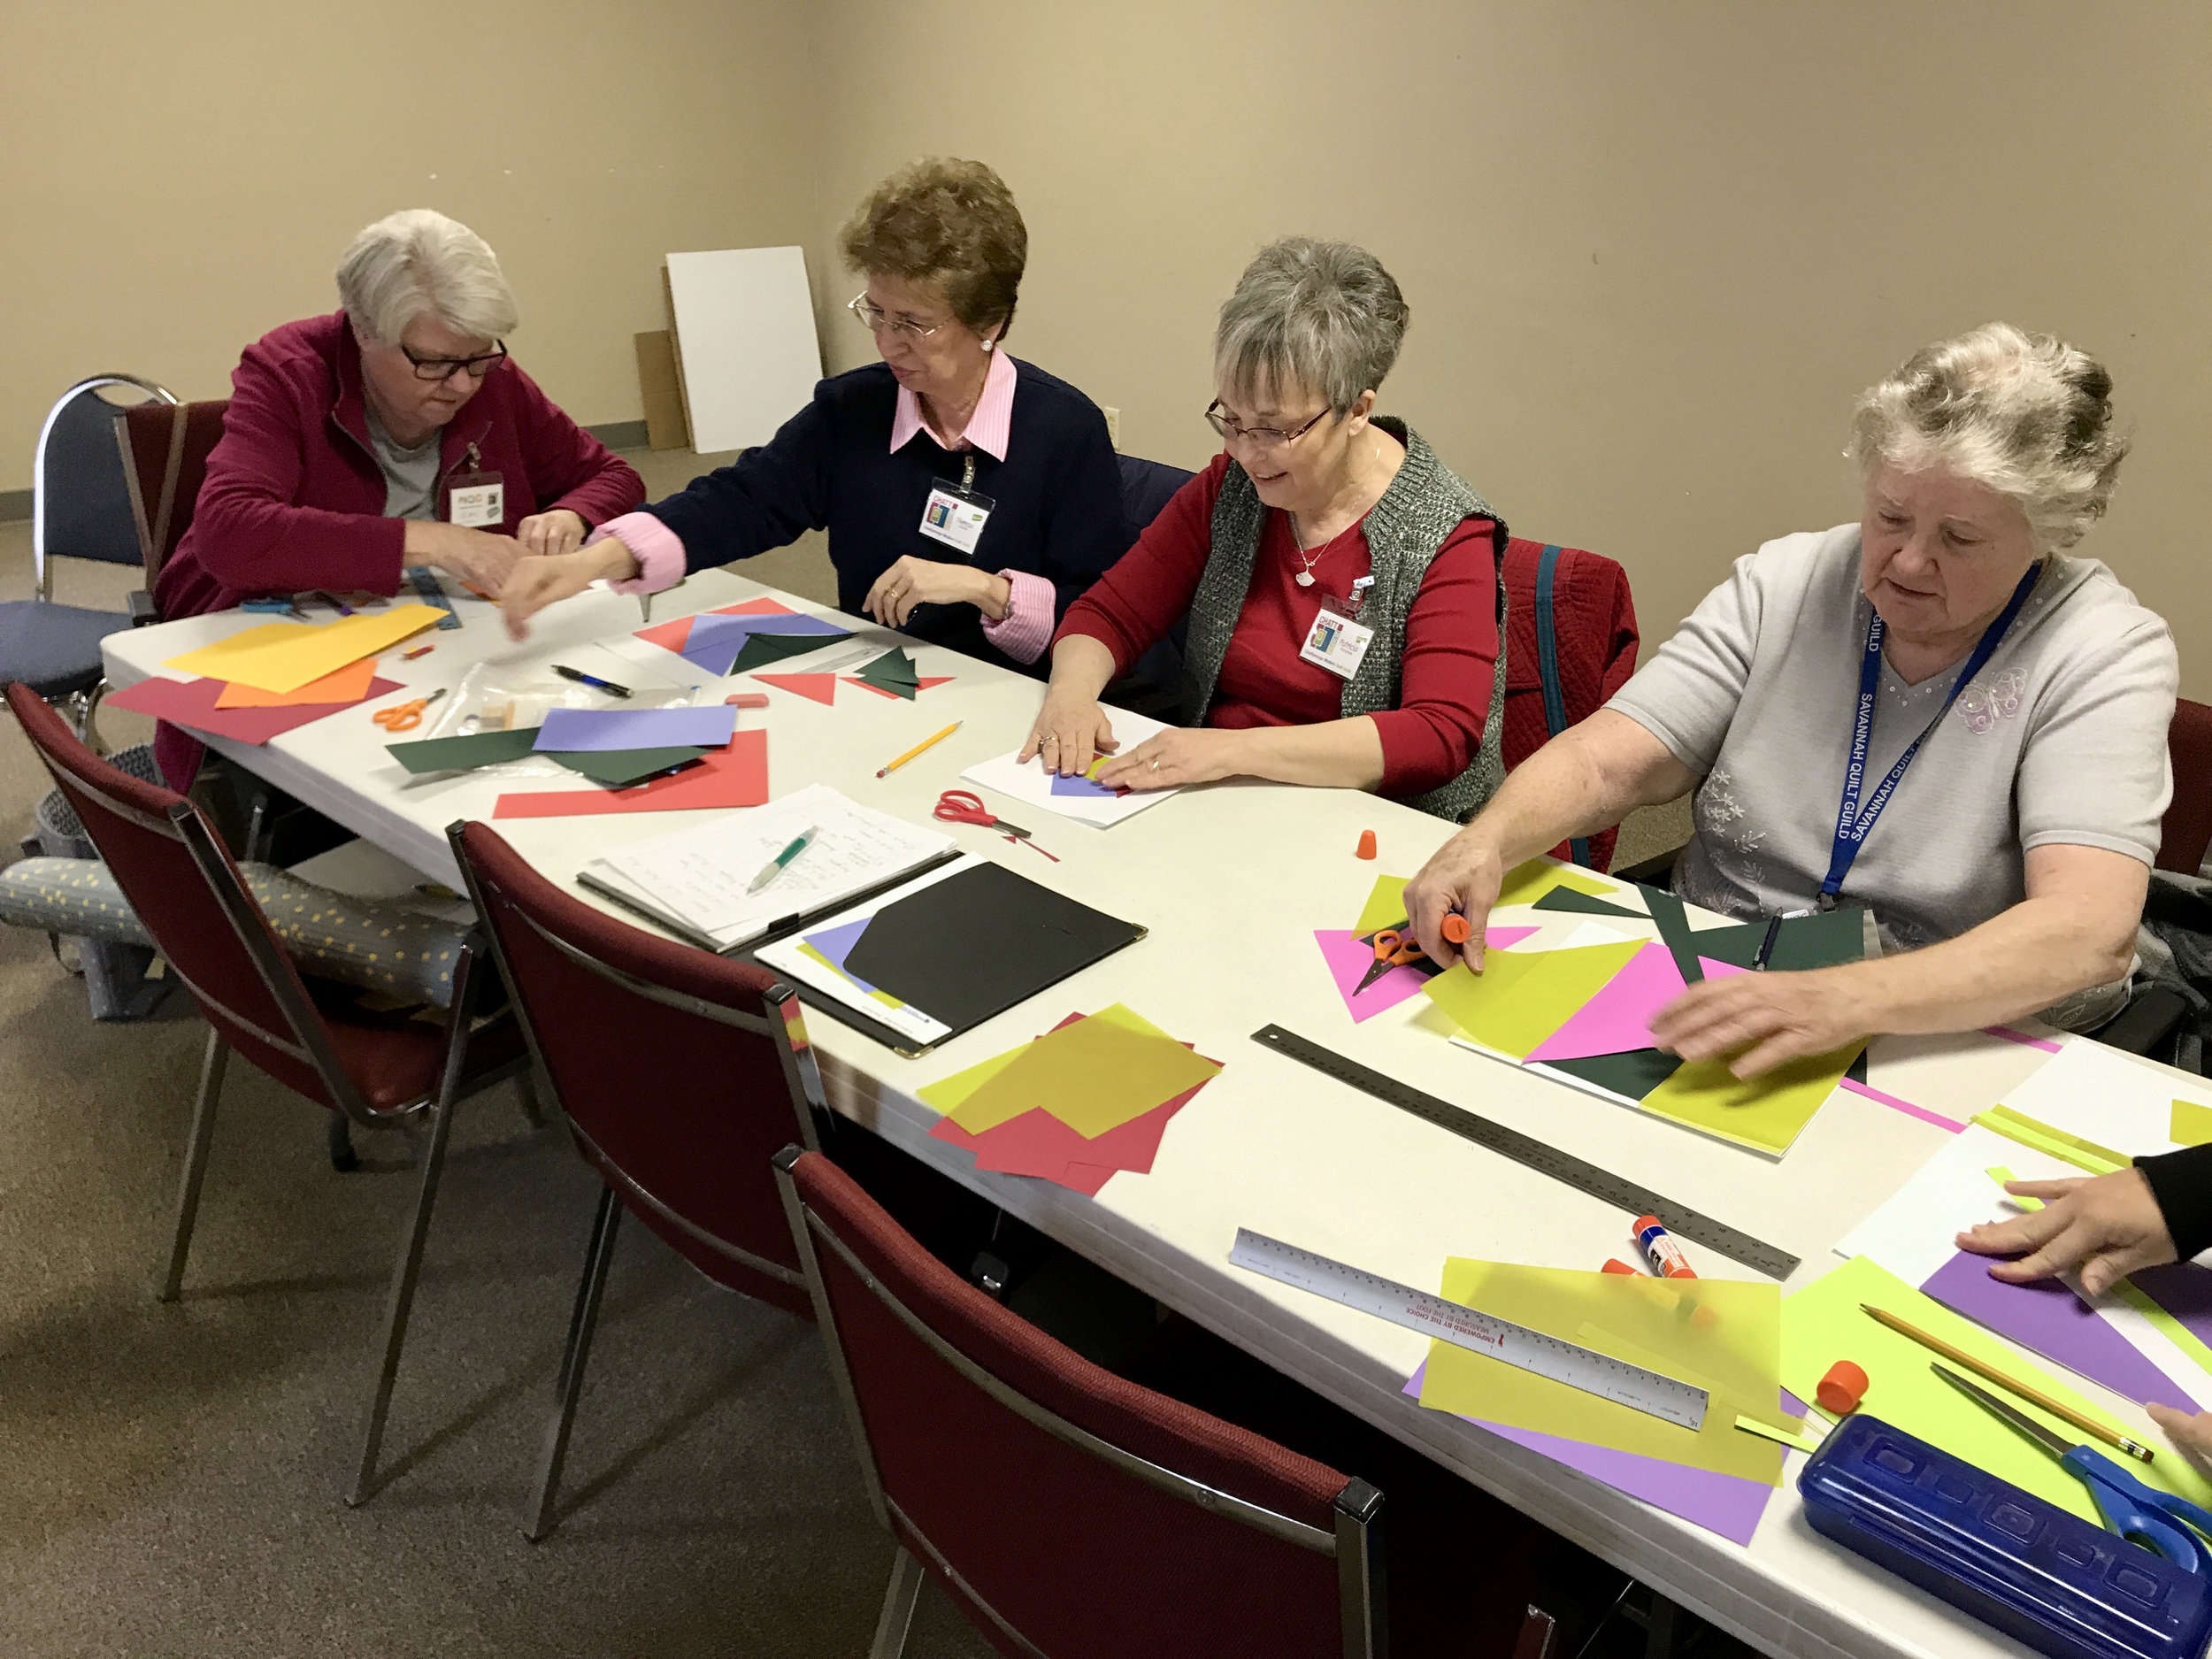 Jean, Theresa, Patricia, and visitor Helen work on their paper blocks